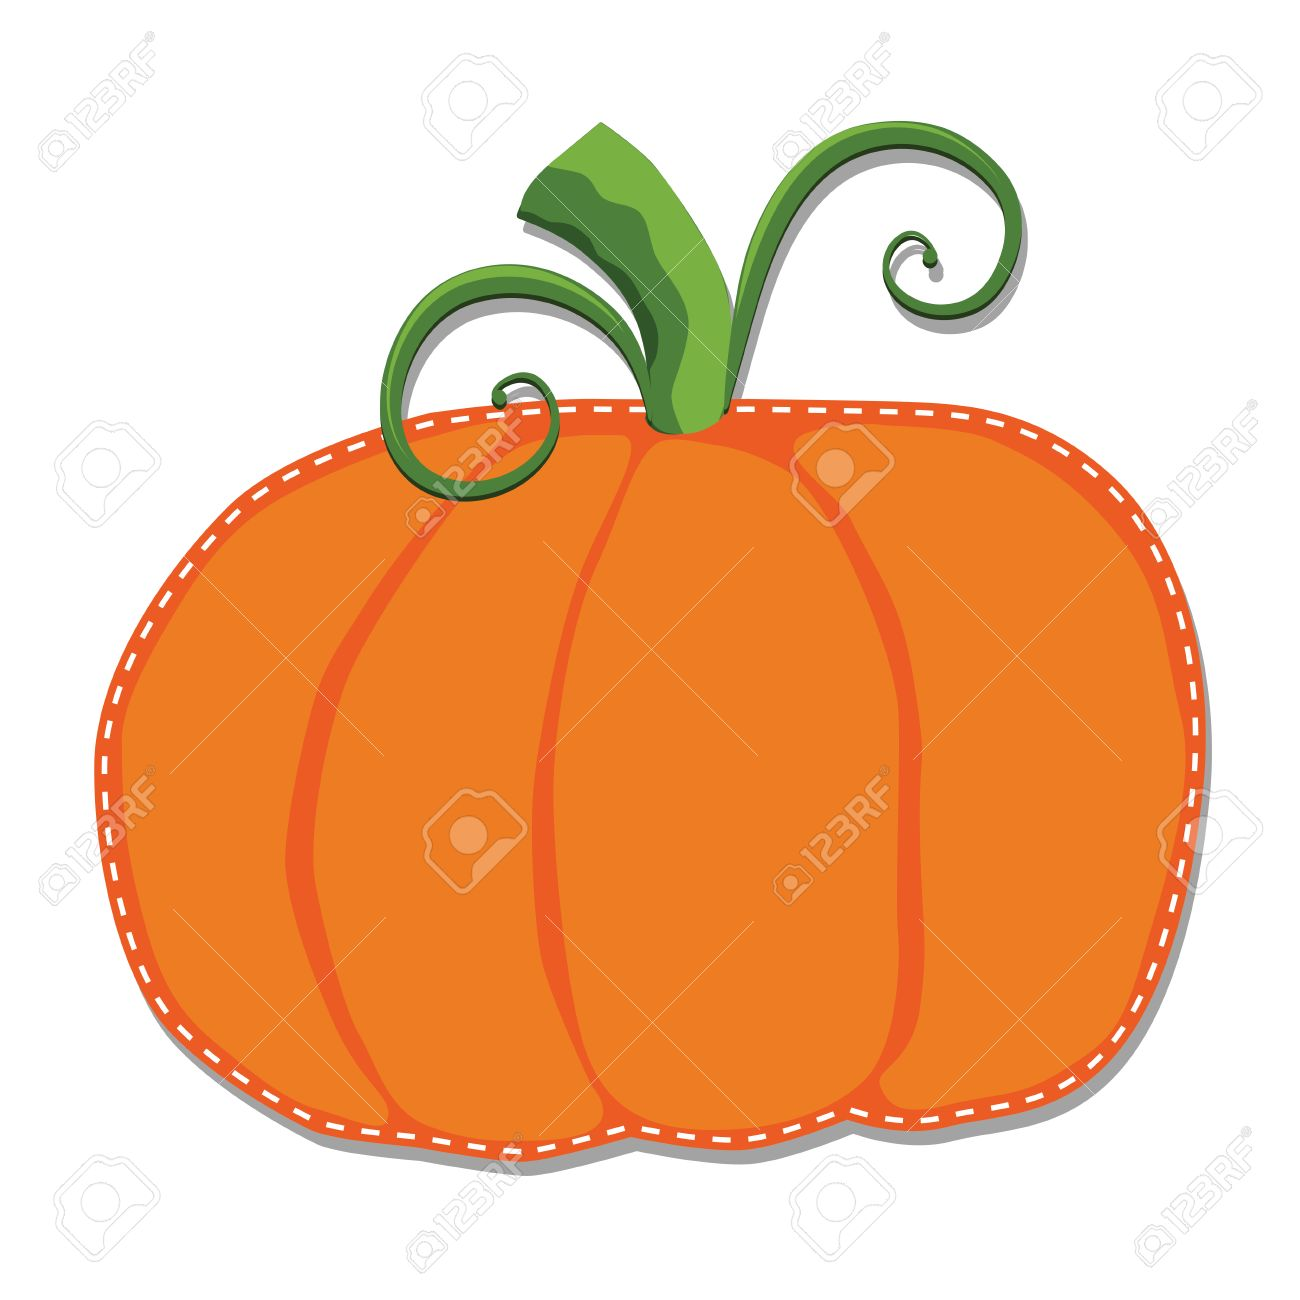 Pumpkin Clipart No Background - Pumpkin On A Transparent Background Royalty Free Cliparts, Vectors ...